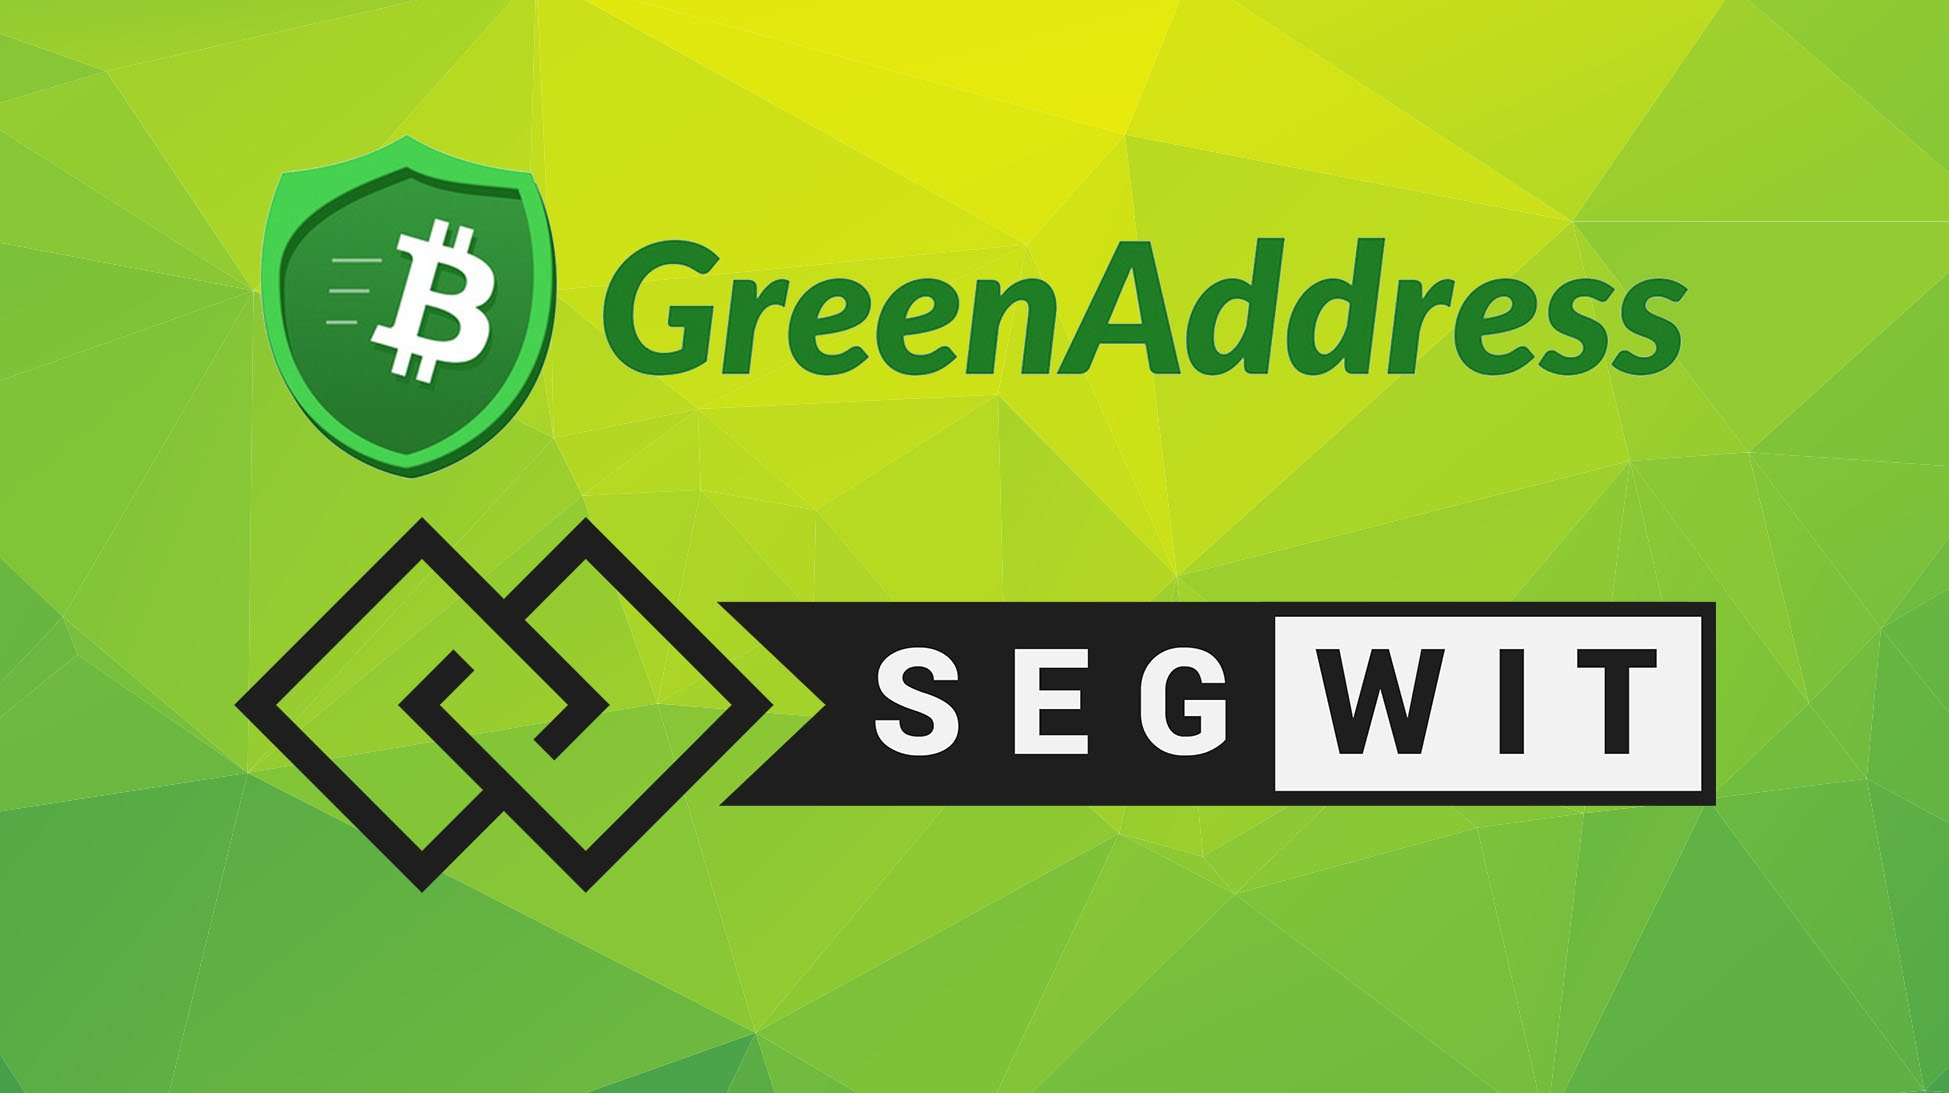 GreenAddress Is Now the First Mobile Wallet to Offer SegWit Transactions